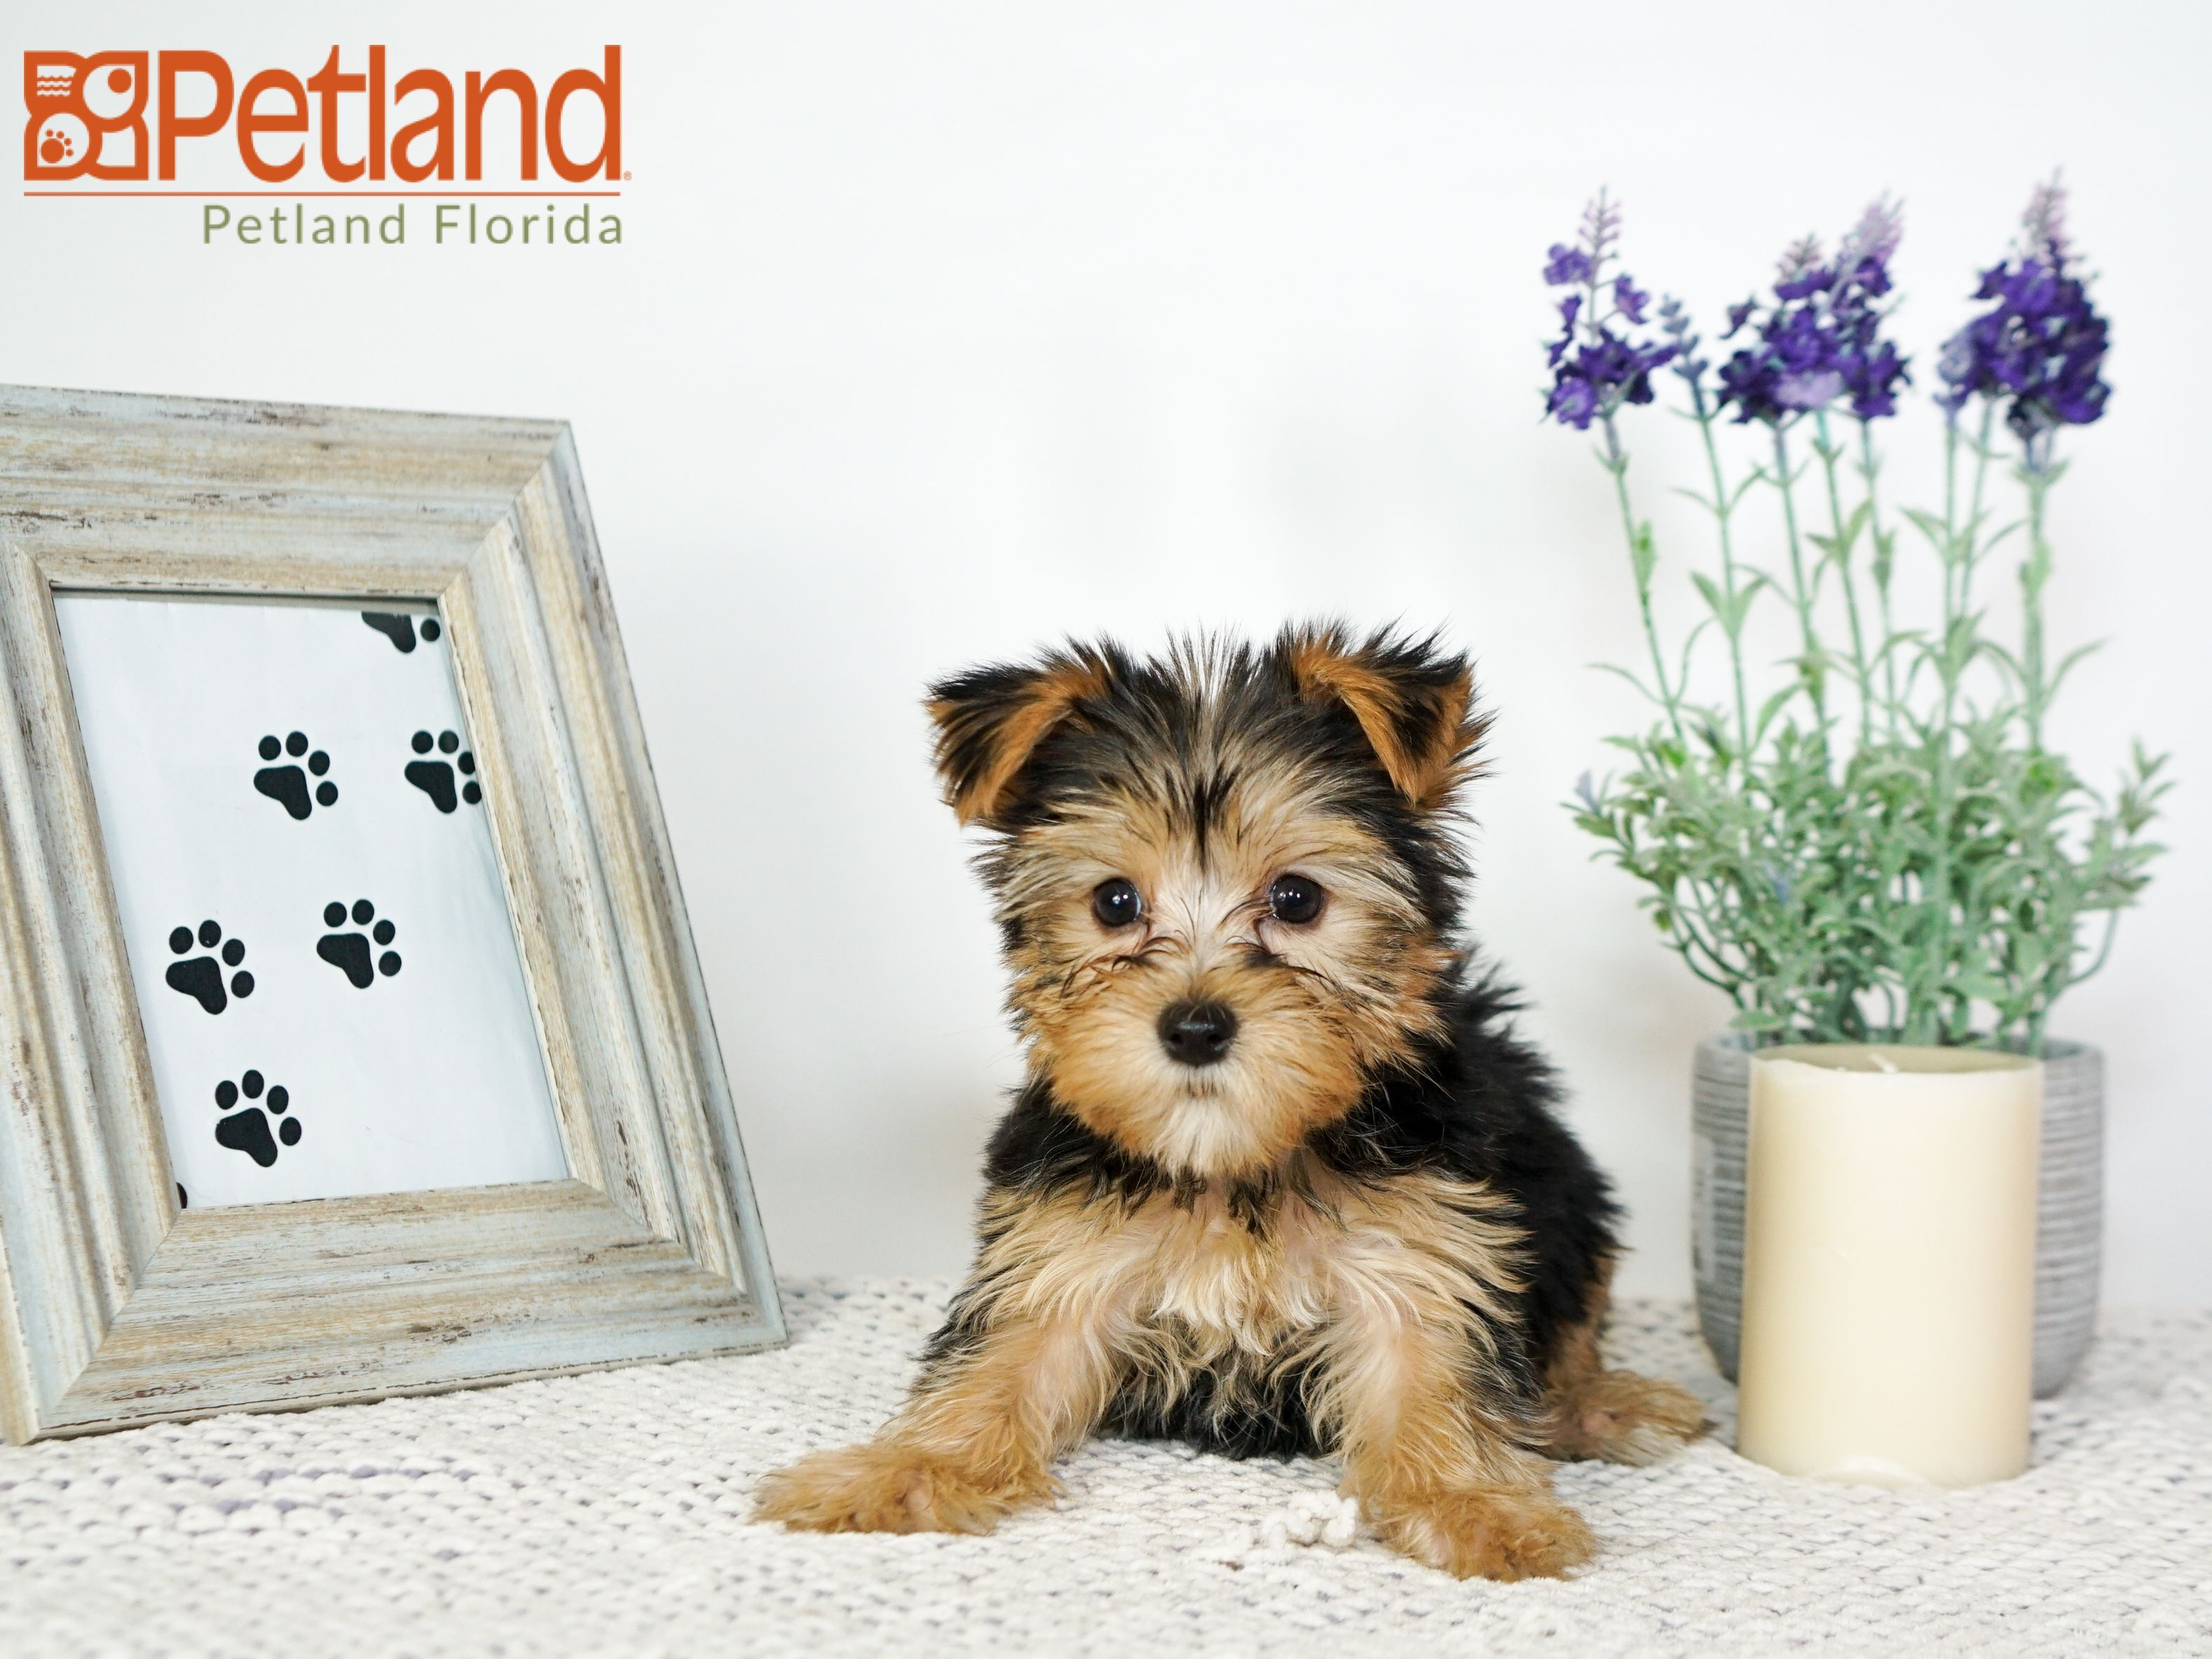 Puppies For Sale With Images Puppy Friends Yorkshire Terrier